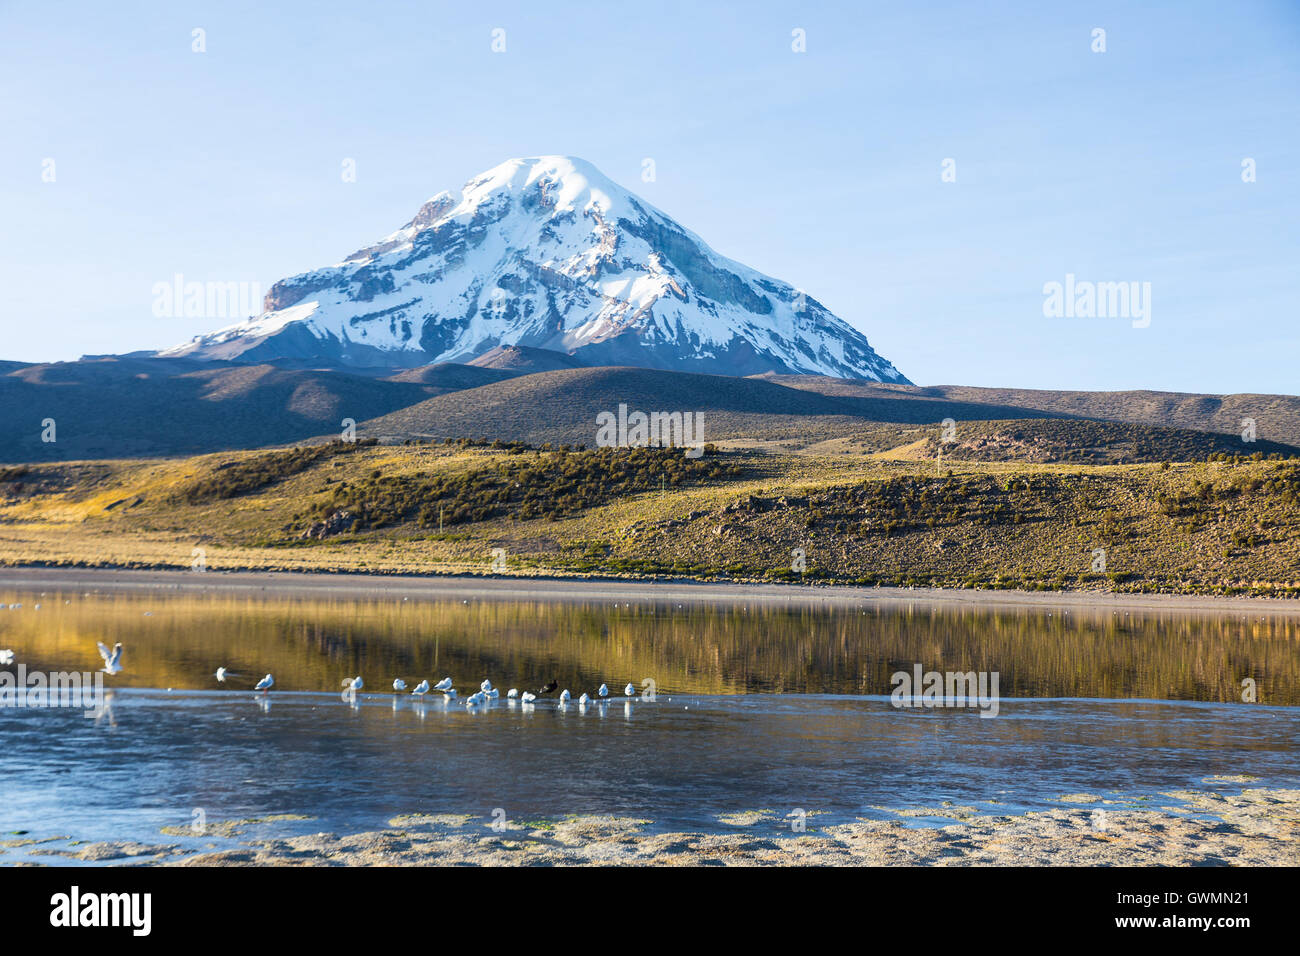 Huayñacota volcan Sajama et le lac, dans le Parc Naturel de Sajama. La Bolivie Photo Stock